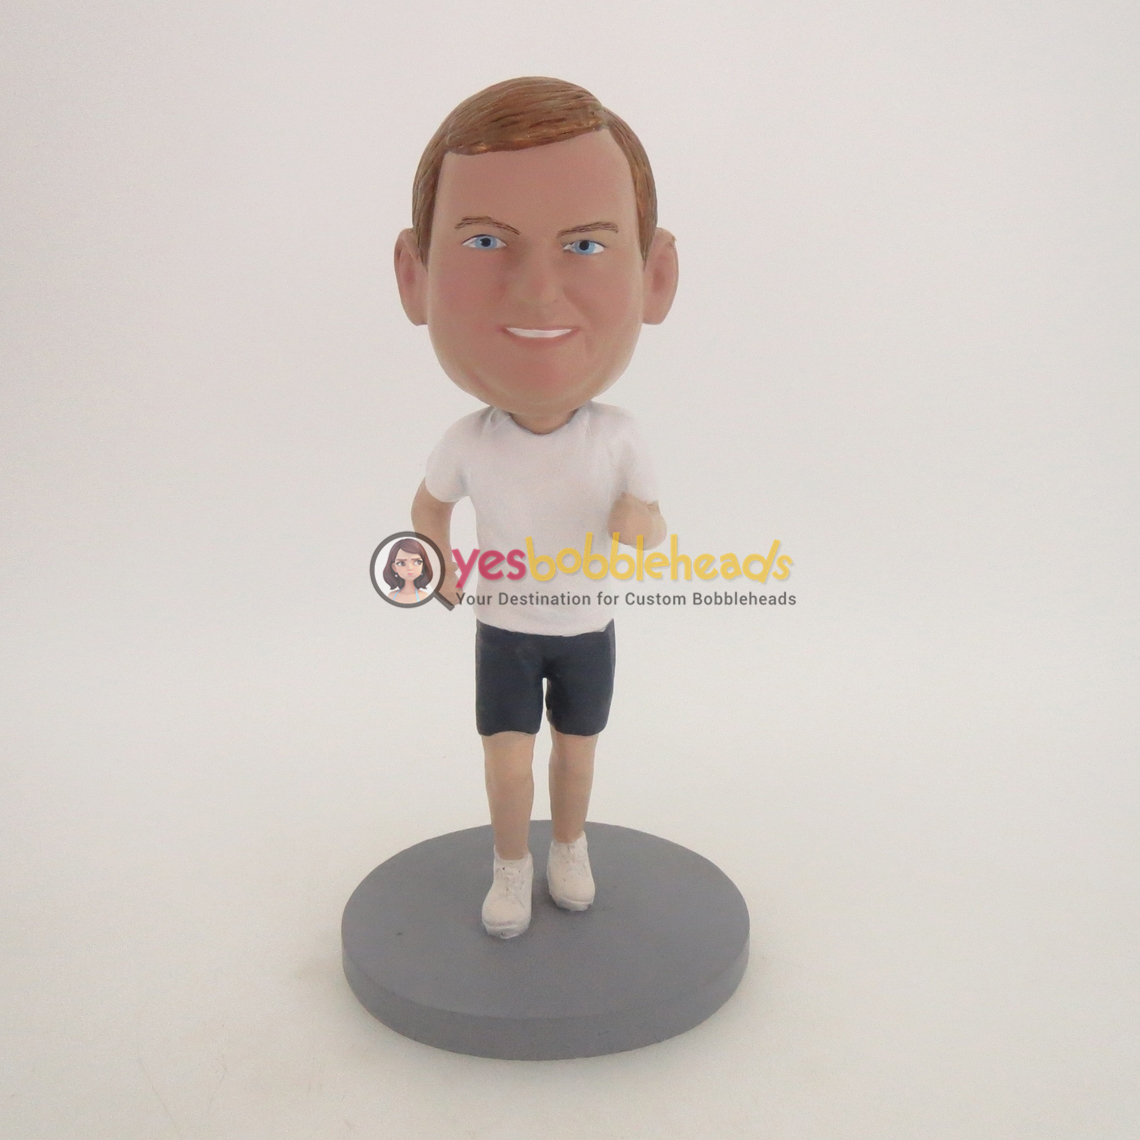 Picture of Custom Bobblehead Doll: Running Man With White Short Sleeve